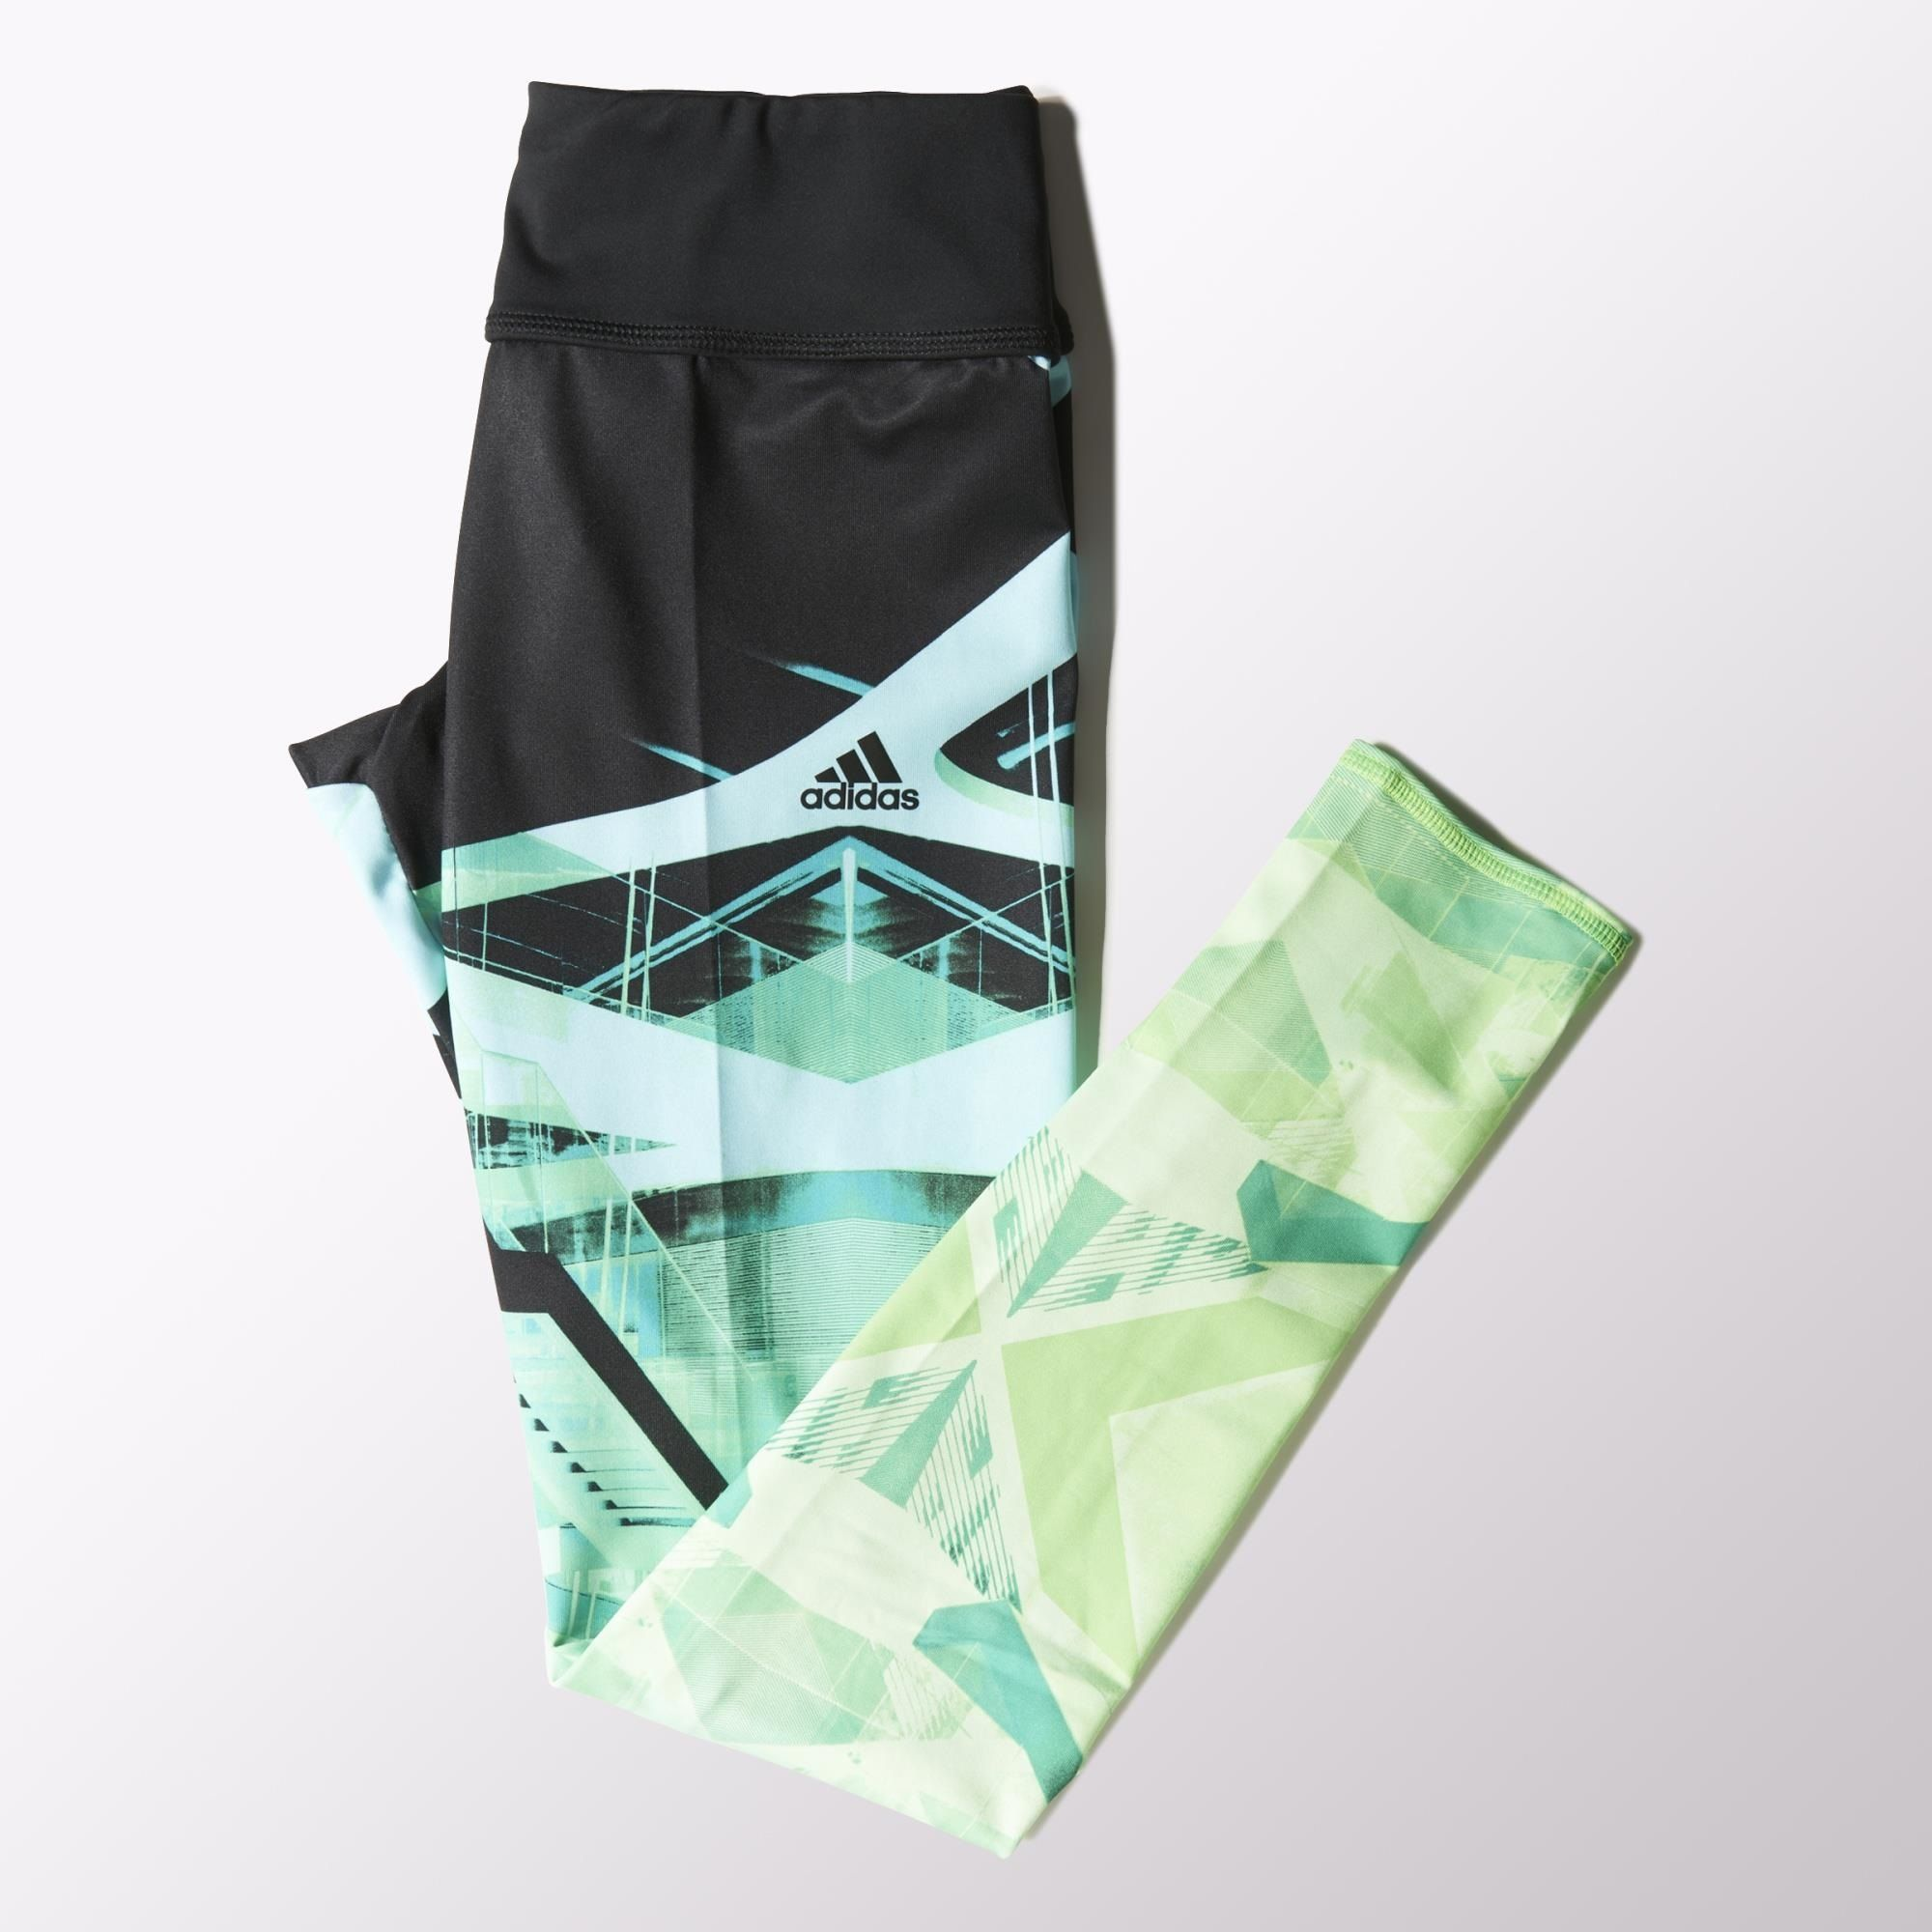 The bold graphic print on these women's adidas Studio Power Laces Tights is inspired by modern architecture, with floating walkways and staircases that create interesting geometric patterns across the legs. The training tights are made of stretchy climalite® fabric that pulls sweat away from skin and through the garment for fast evaporation, leaving you dry and comfortable. Built with a wide elastic waist and reflective details.